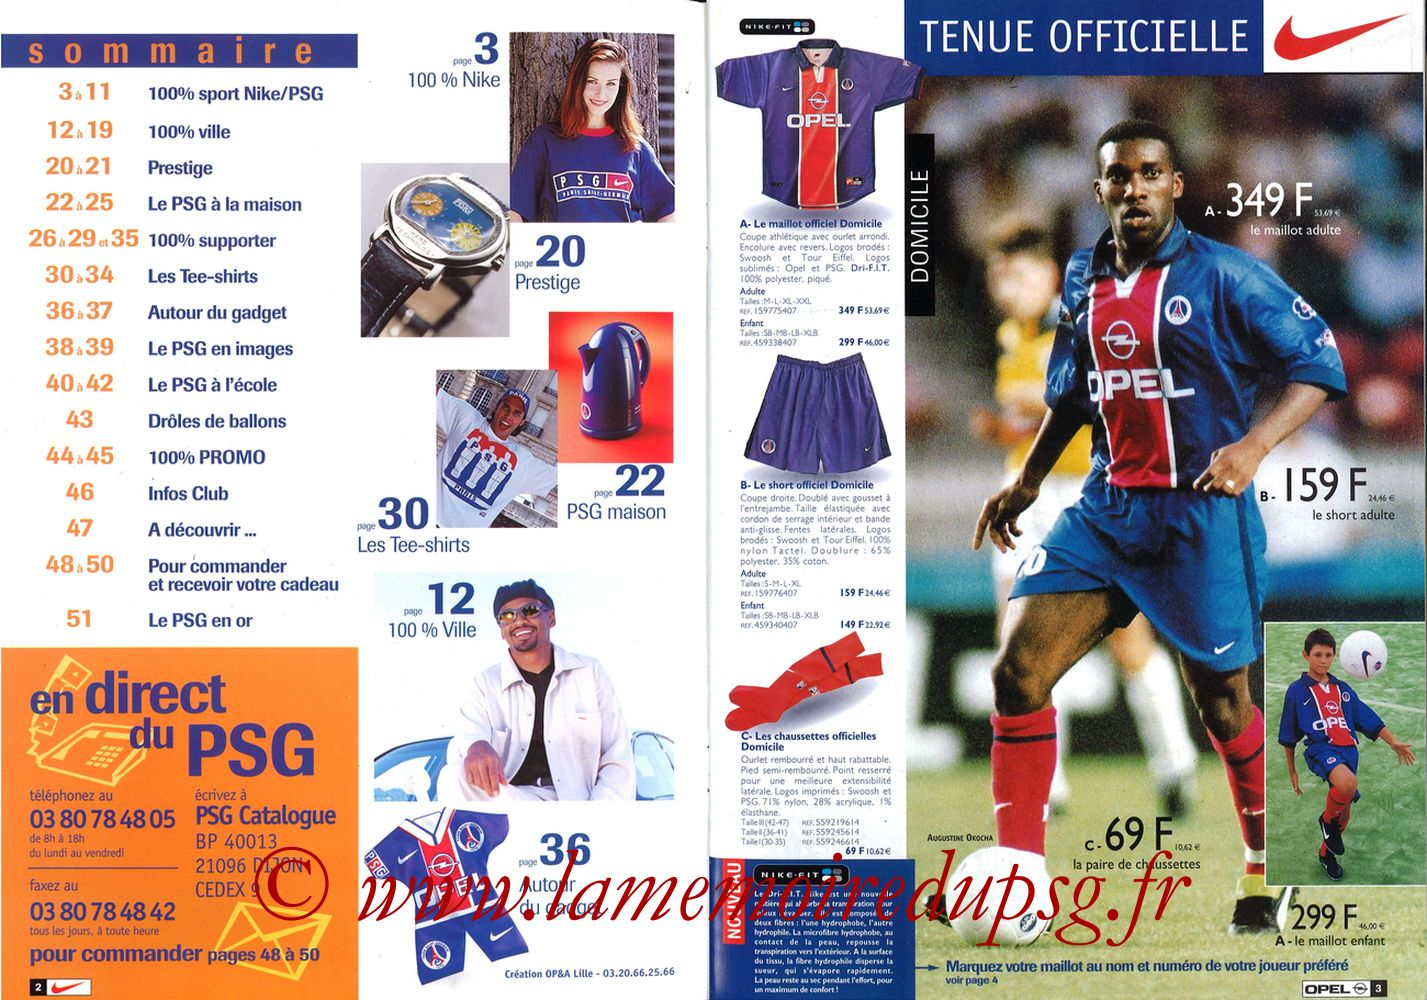 Catalogue PSG - 1998-99 - Pages 02 et 03